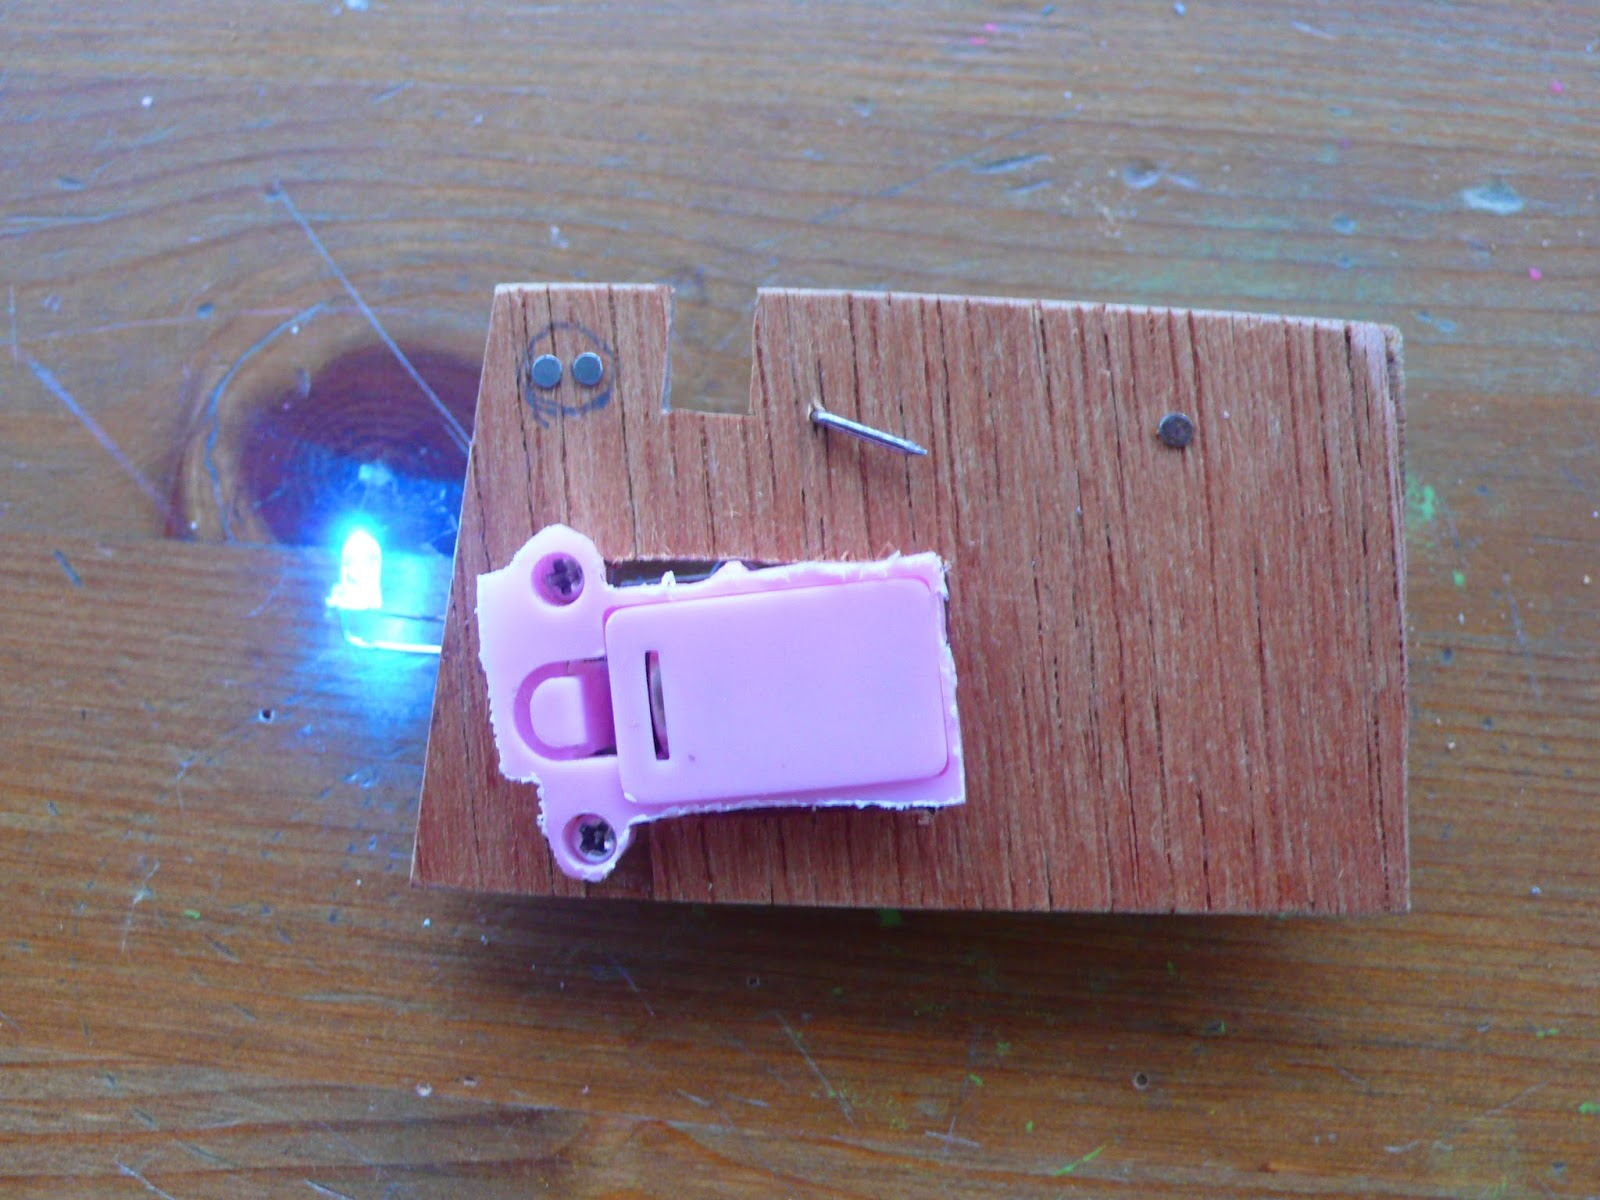 The front of a prototype circuit brooch, with an illuminated LED.